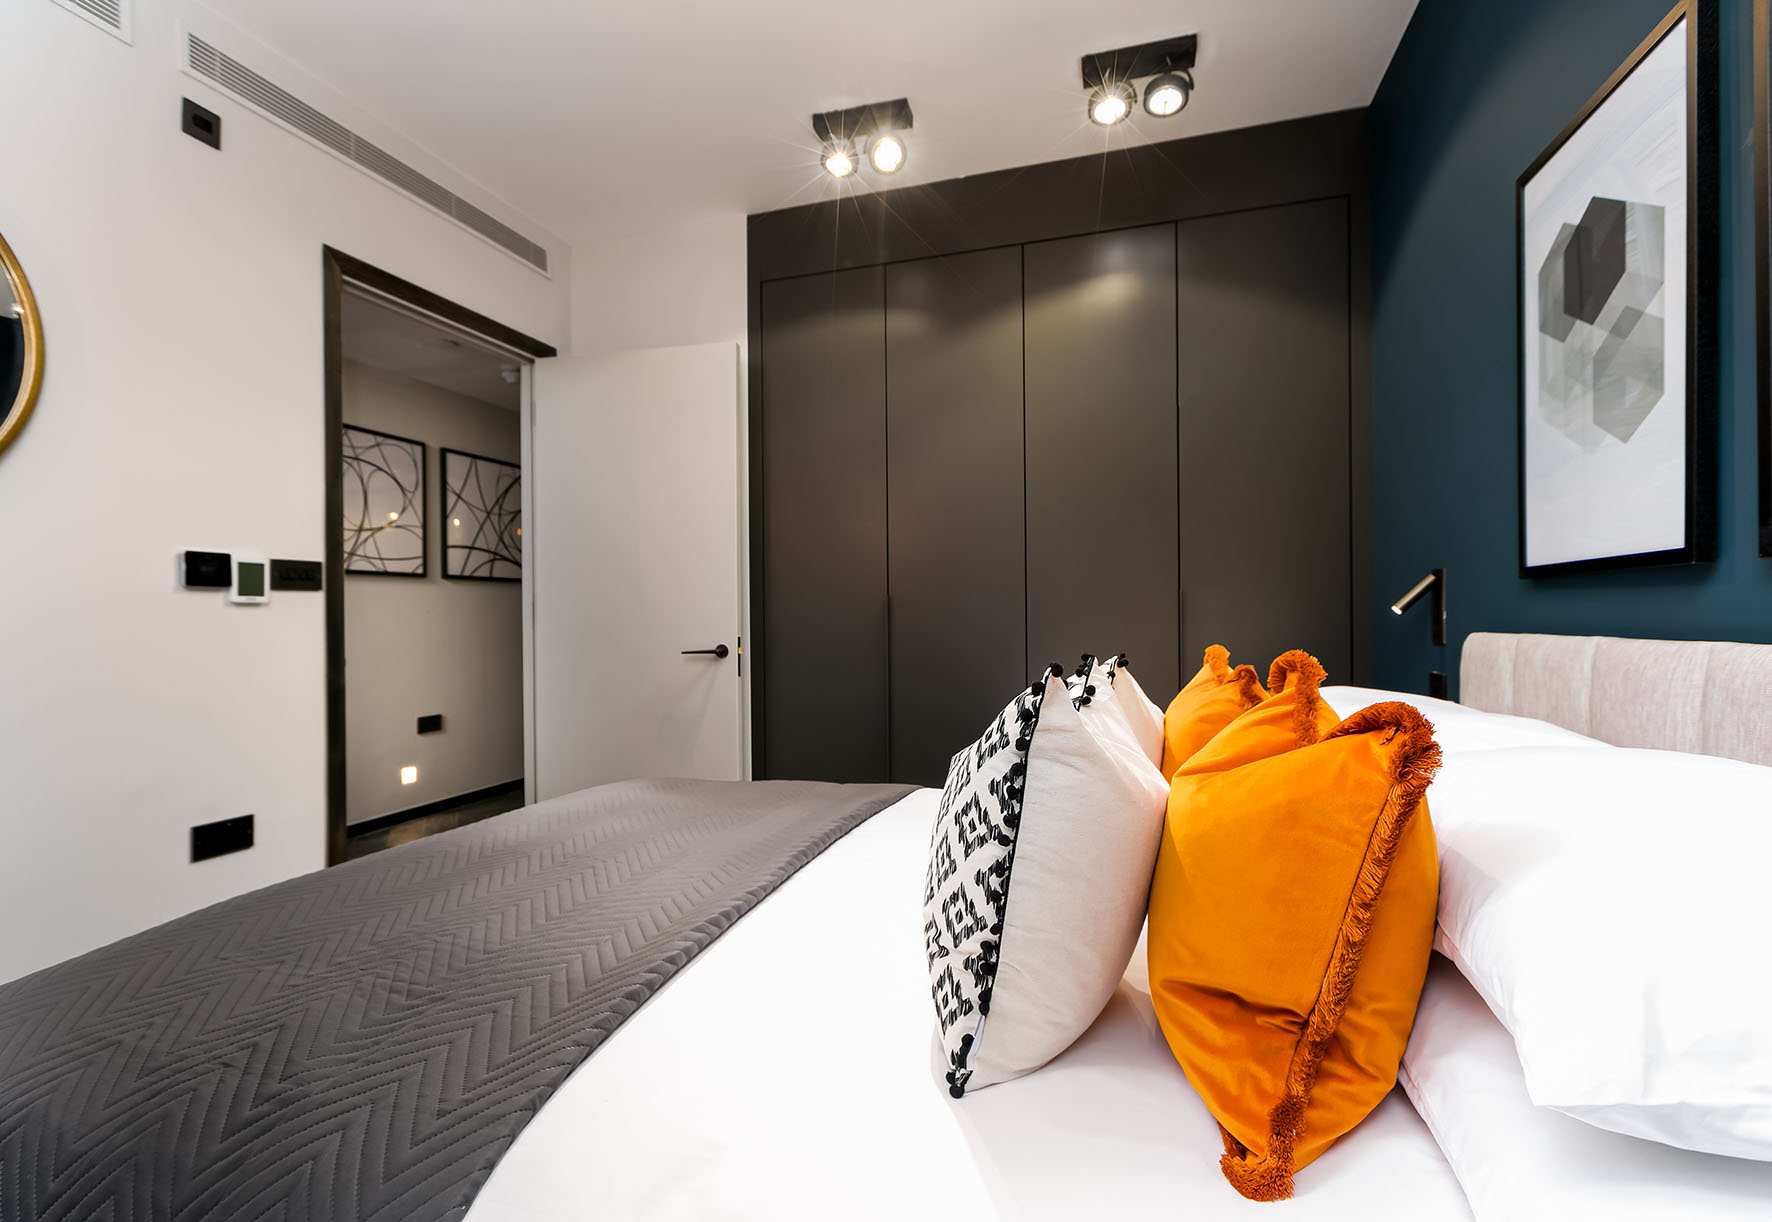 Lovelydays luxury service apartment rental - London - Soho - Berwick Street III - Lovelysuite - 1 bedrooms - 1 bathrooms - Queen bed - rent apartments london - e22113d14dda - Lovelydays